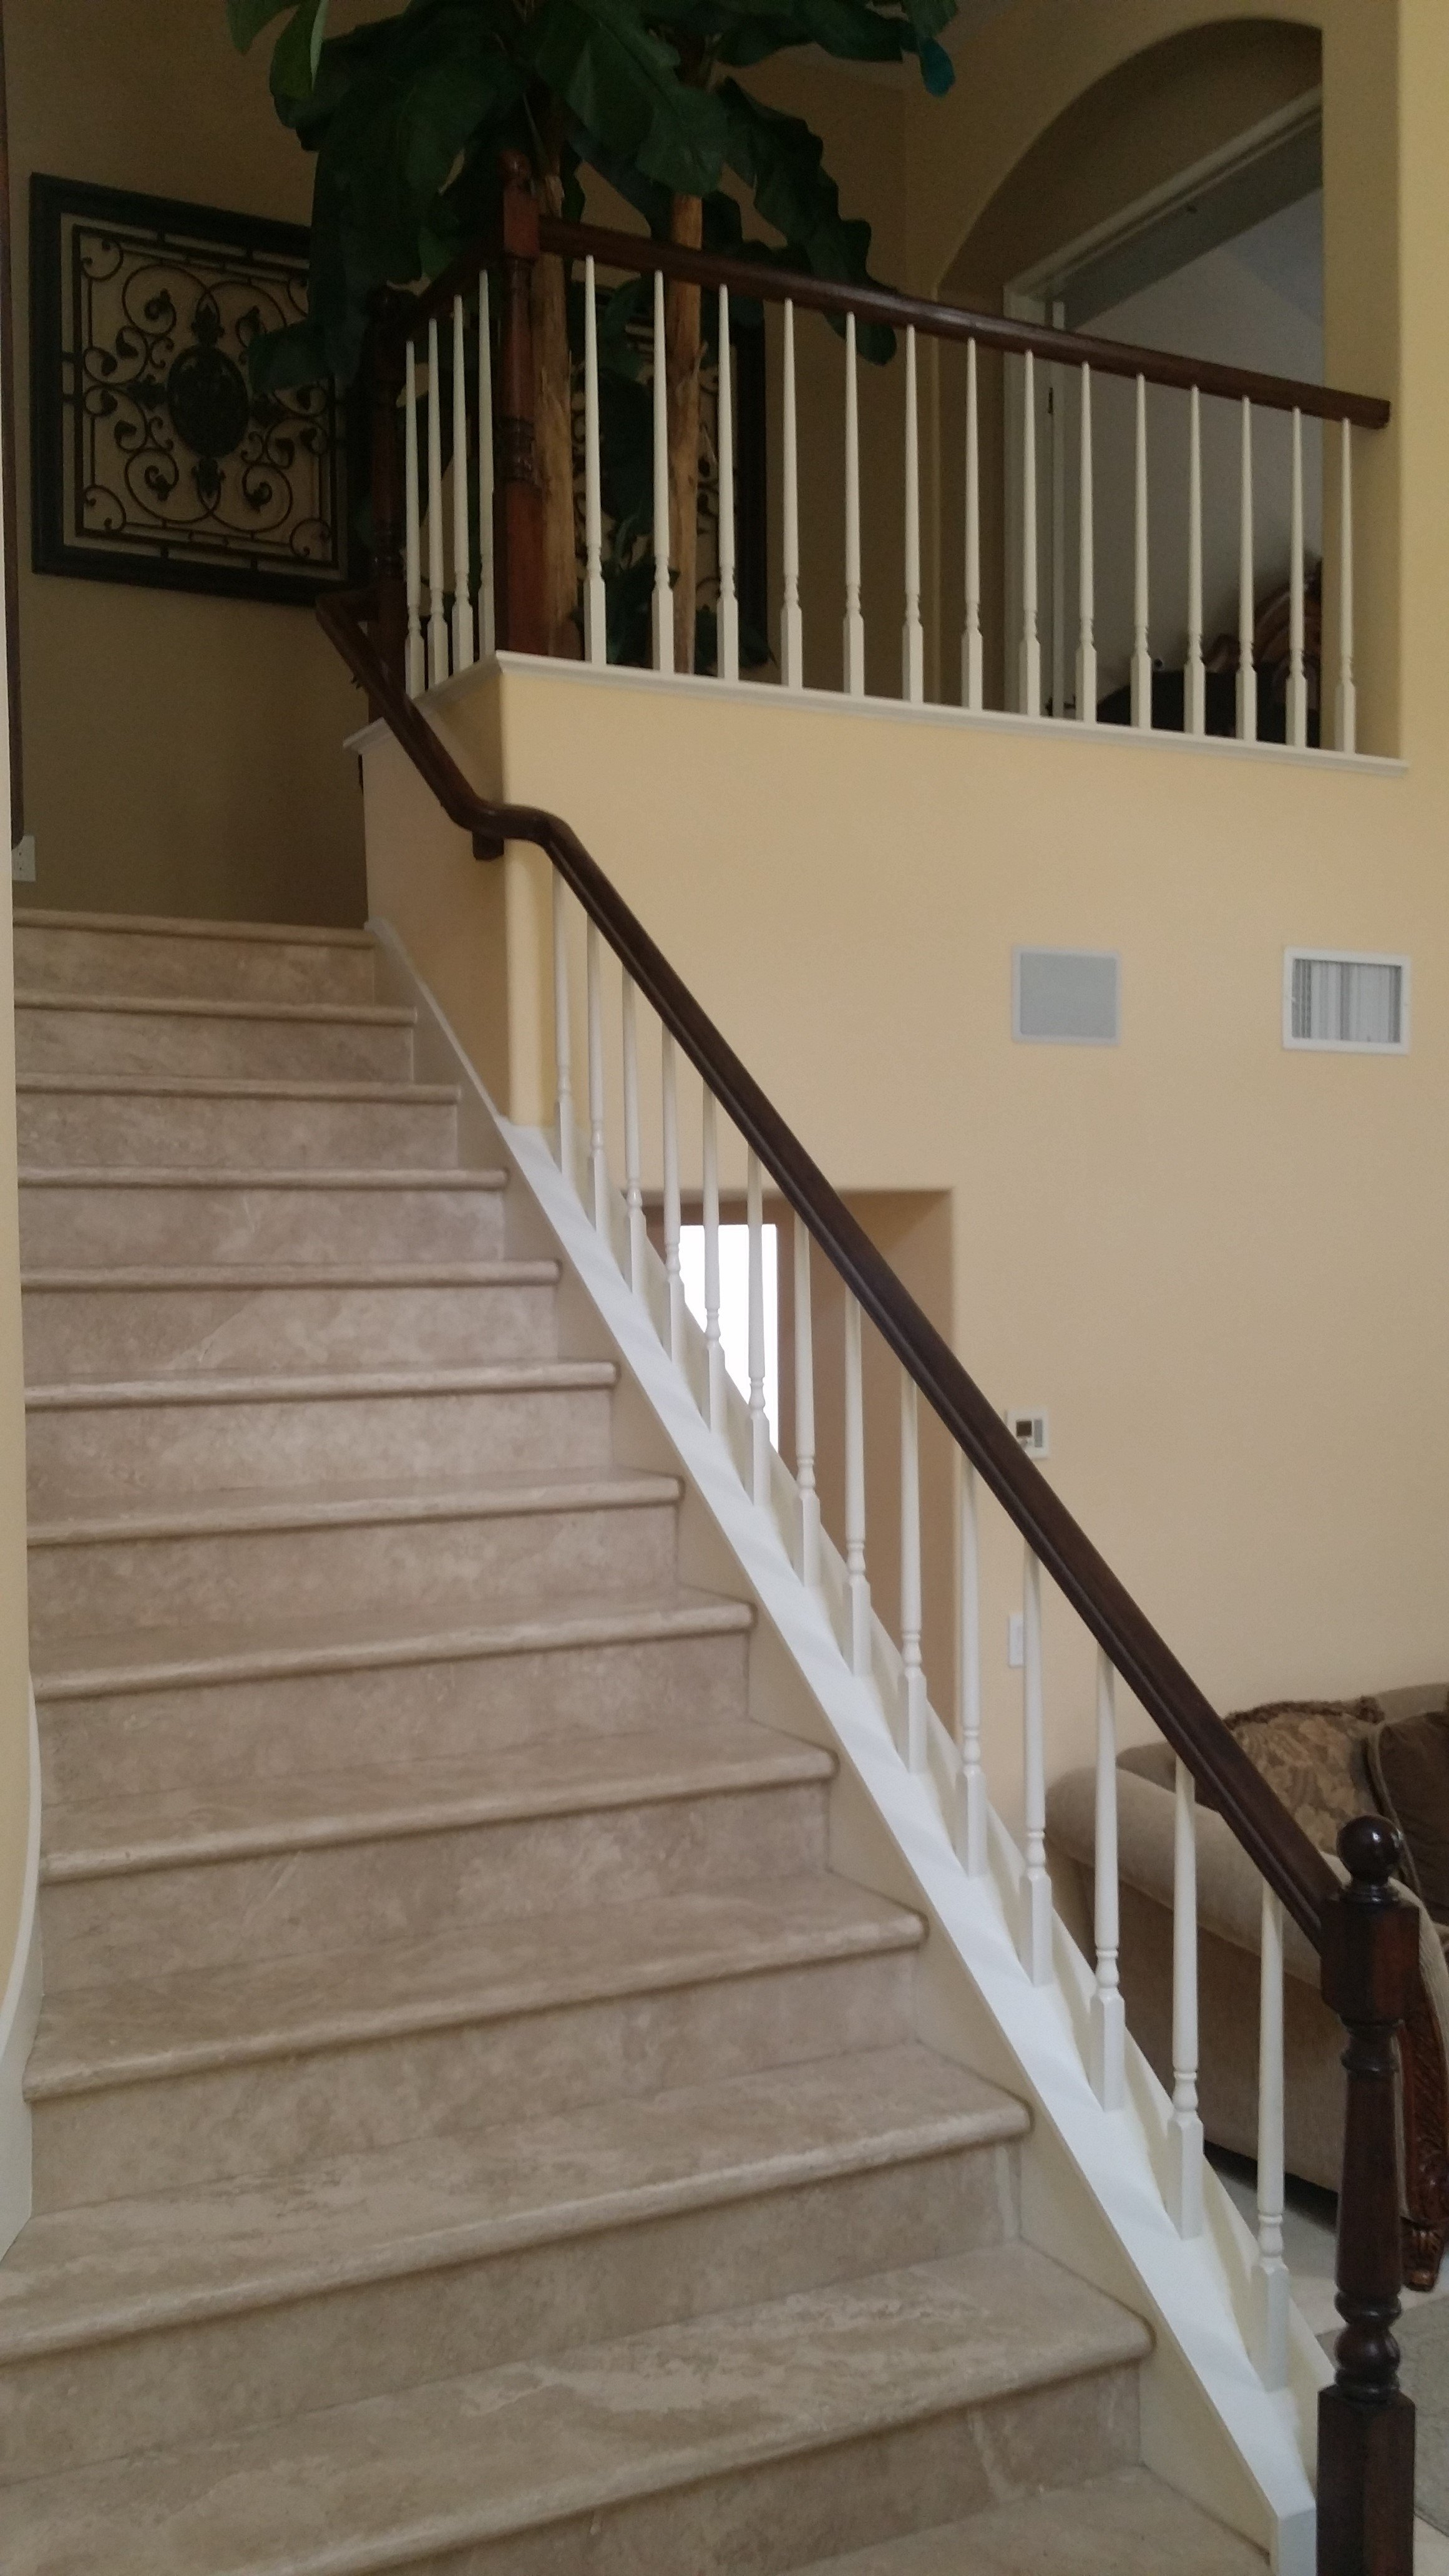 Staircase in California home